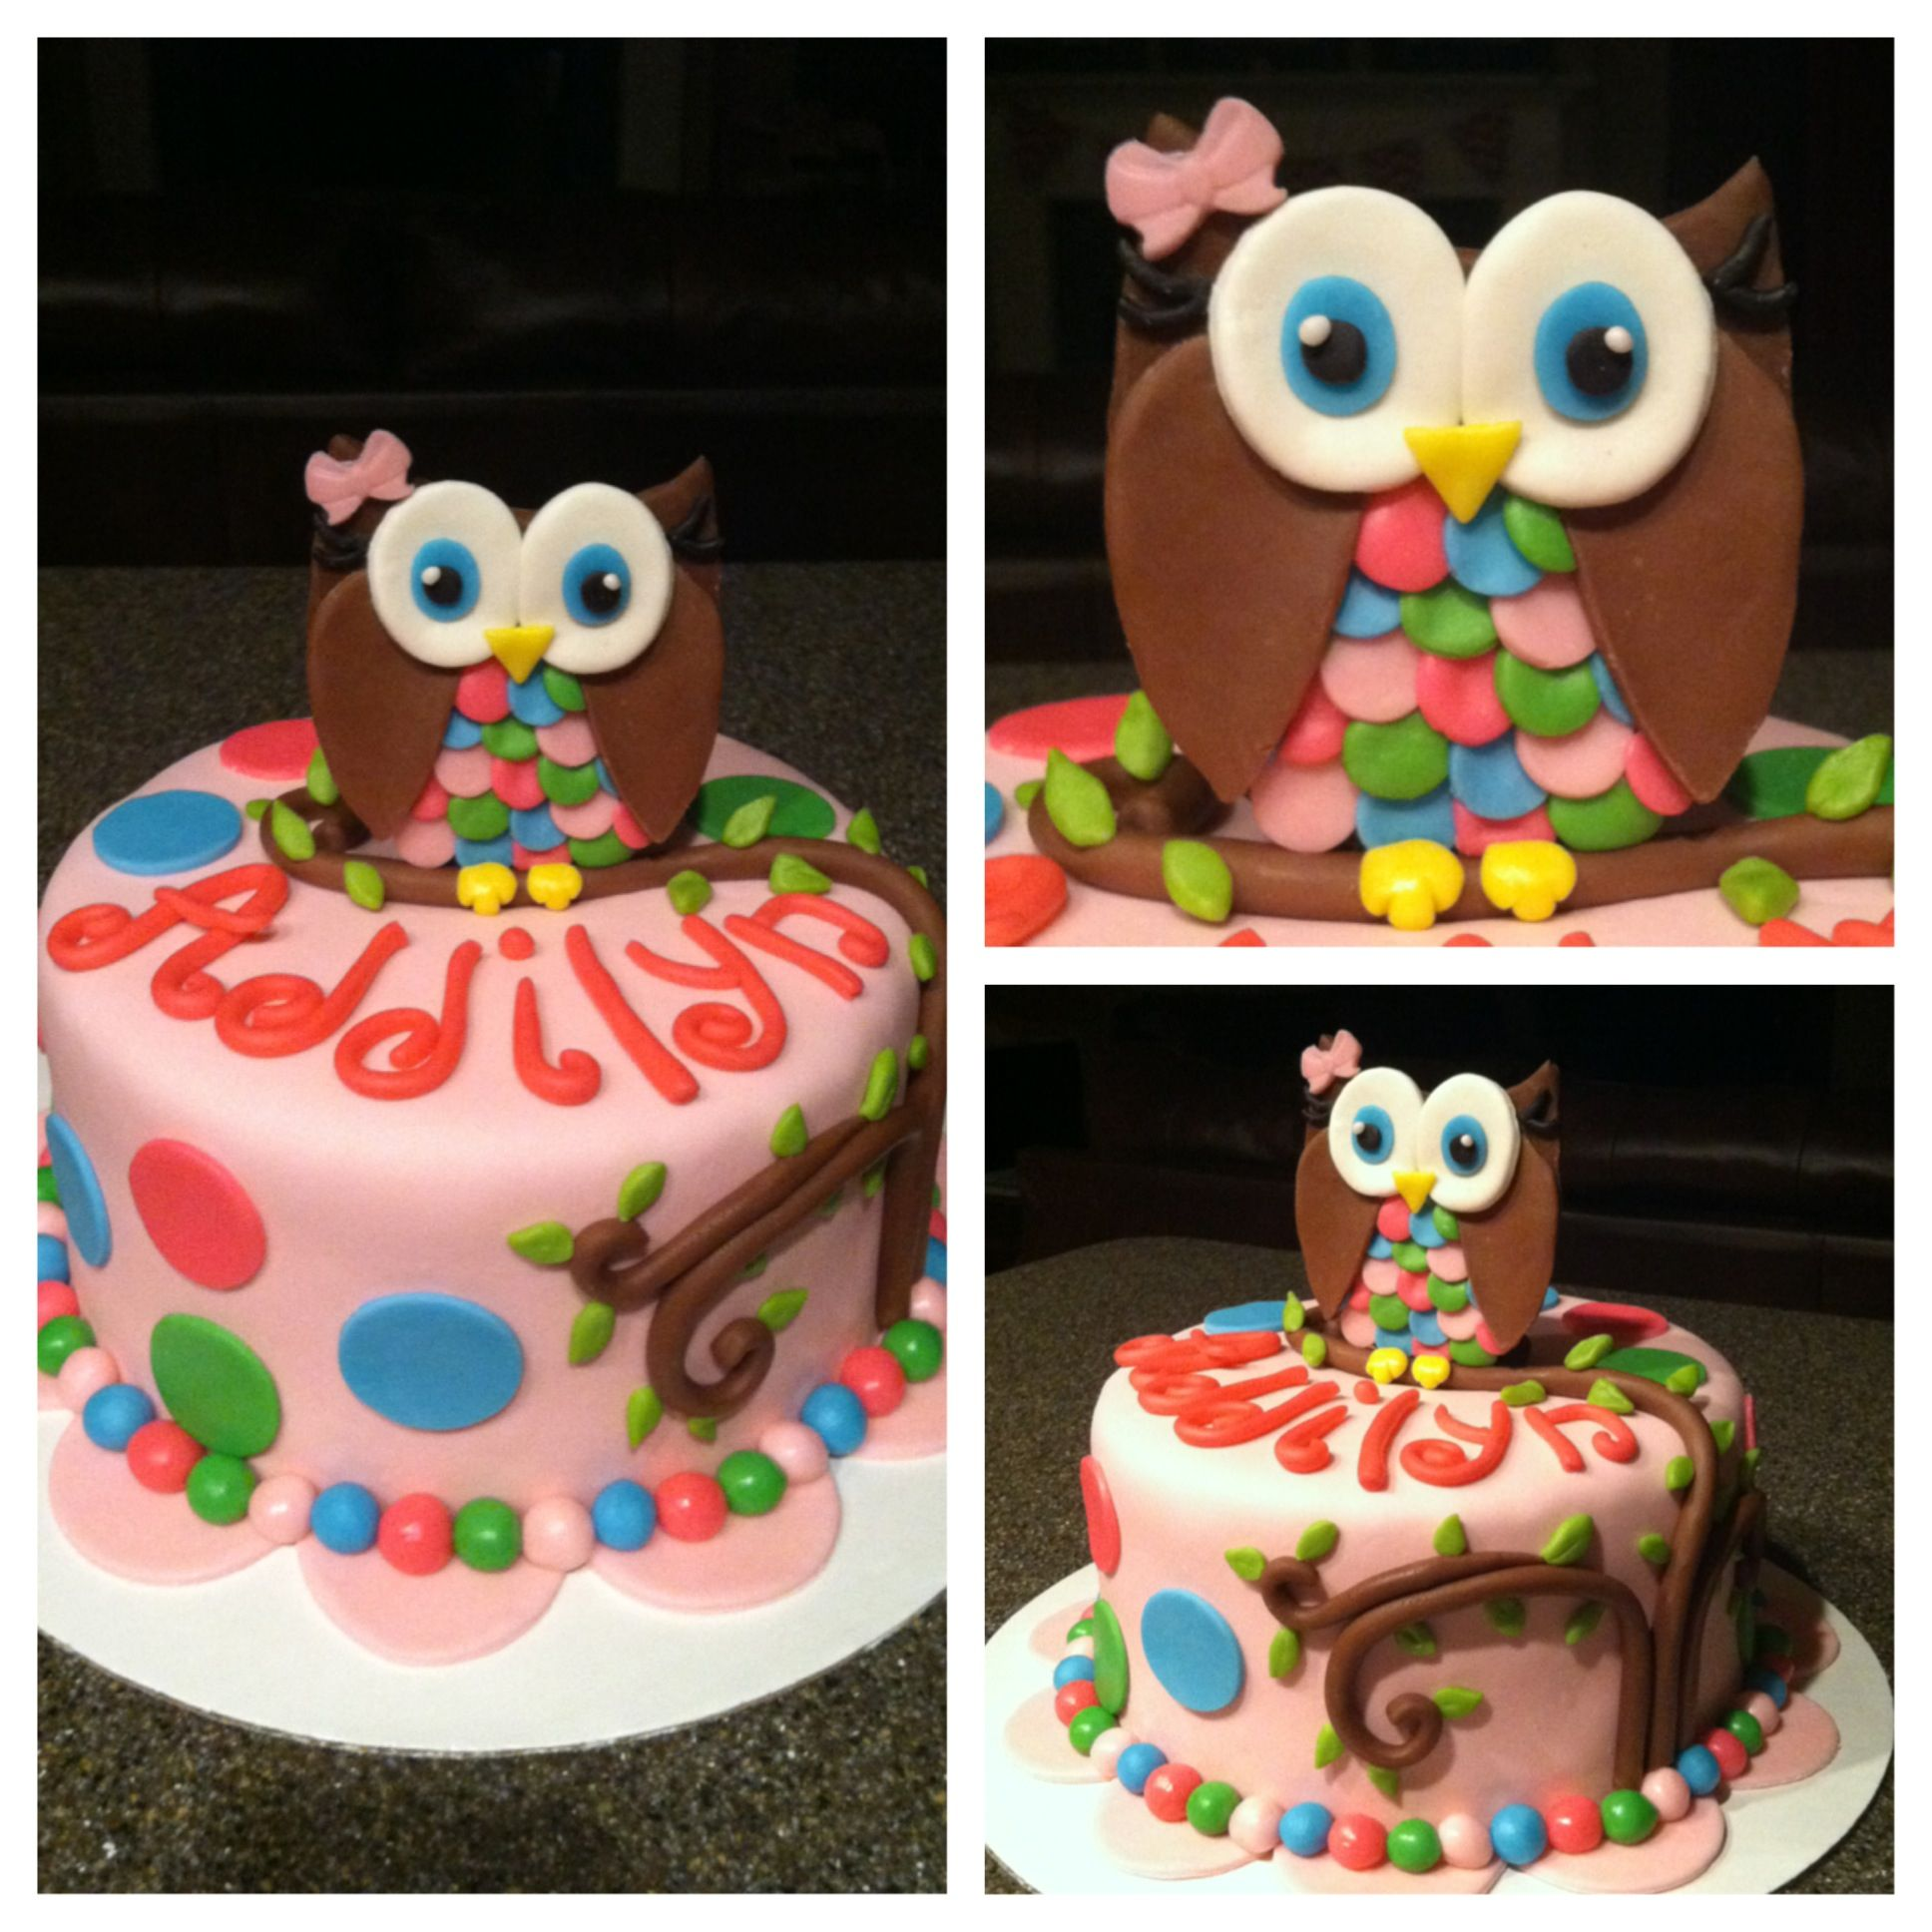 Owl Cake Decor : Owl cake Cake decorating ideas Pinterest